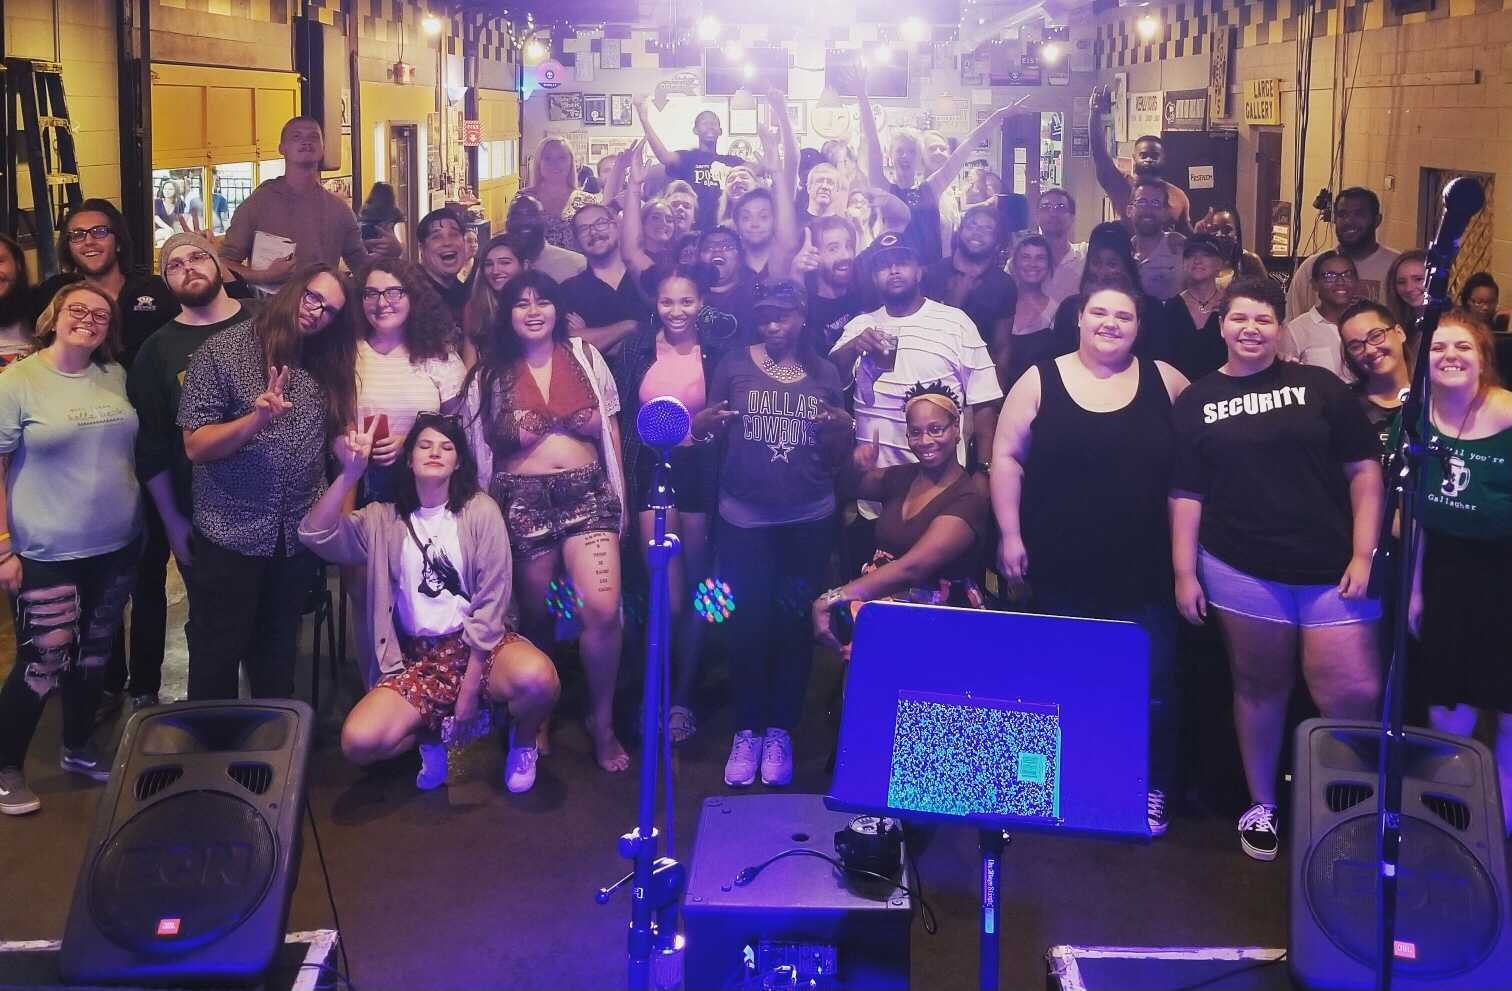 group photo of a poetry slam event